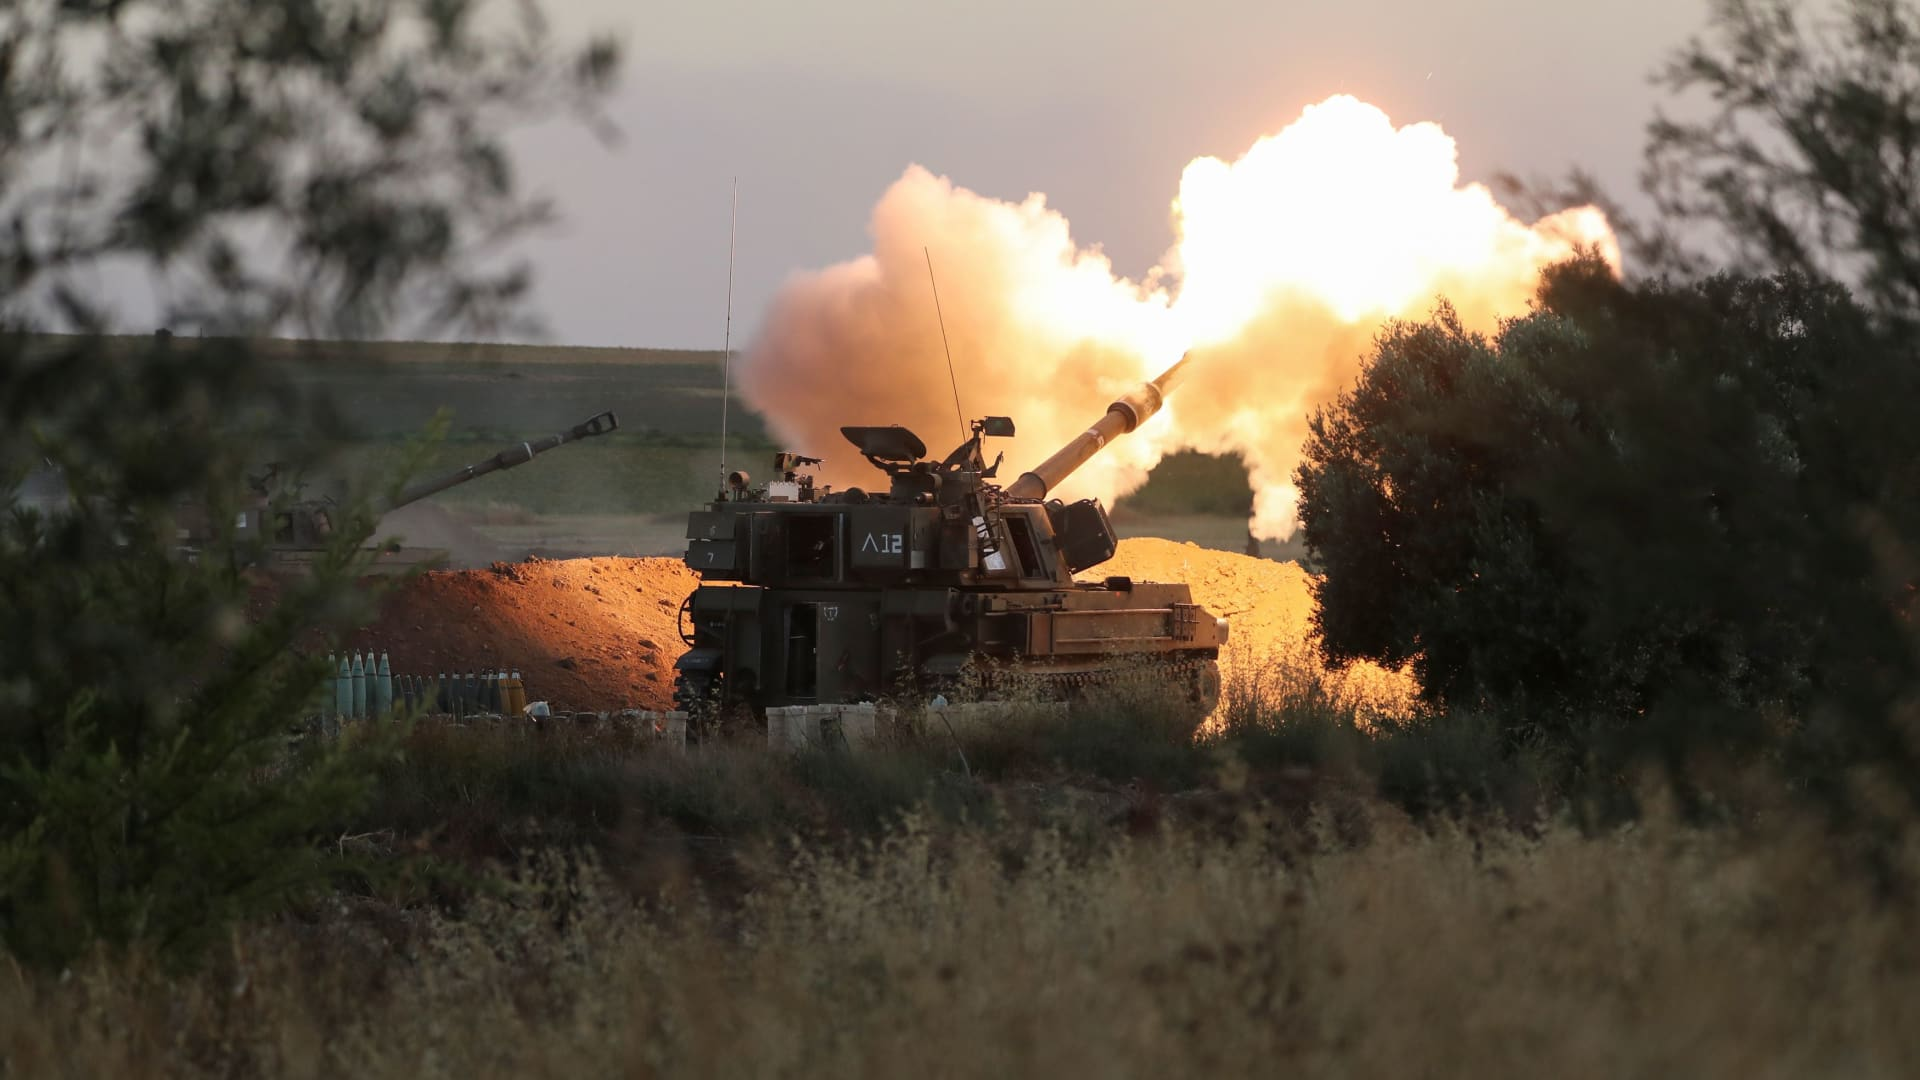 Israeli soldiers work in an artillery unit as it fires near the border between Israel and the Gaza strip, on the Israeli side May 19, 2021.